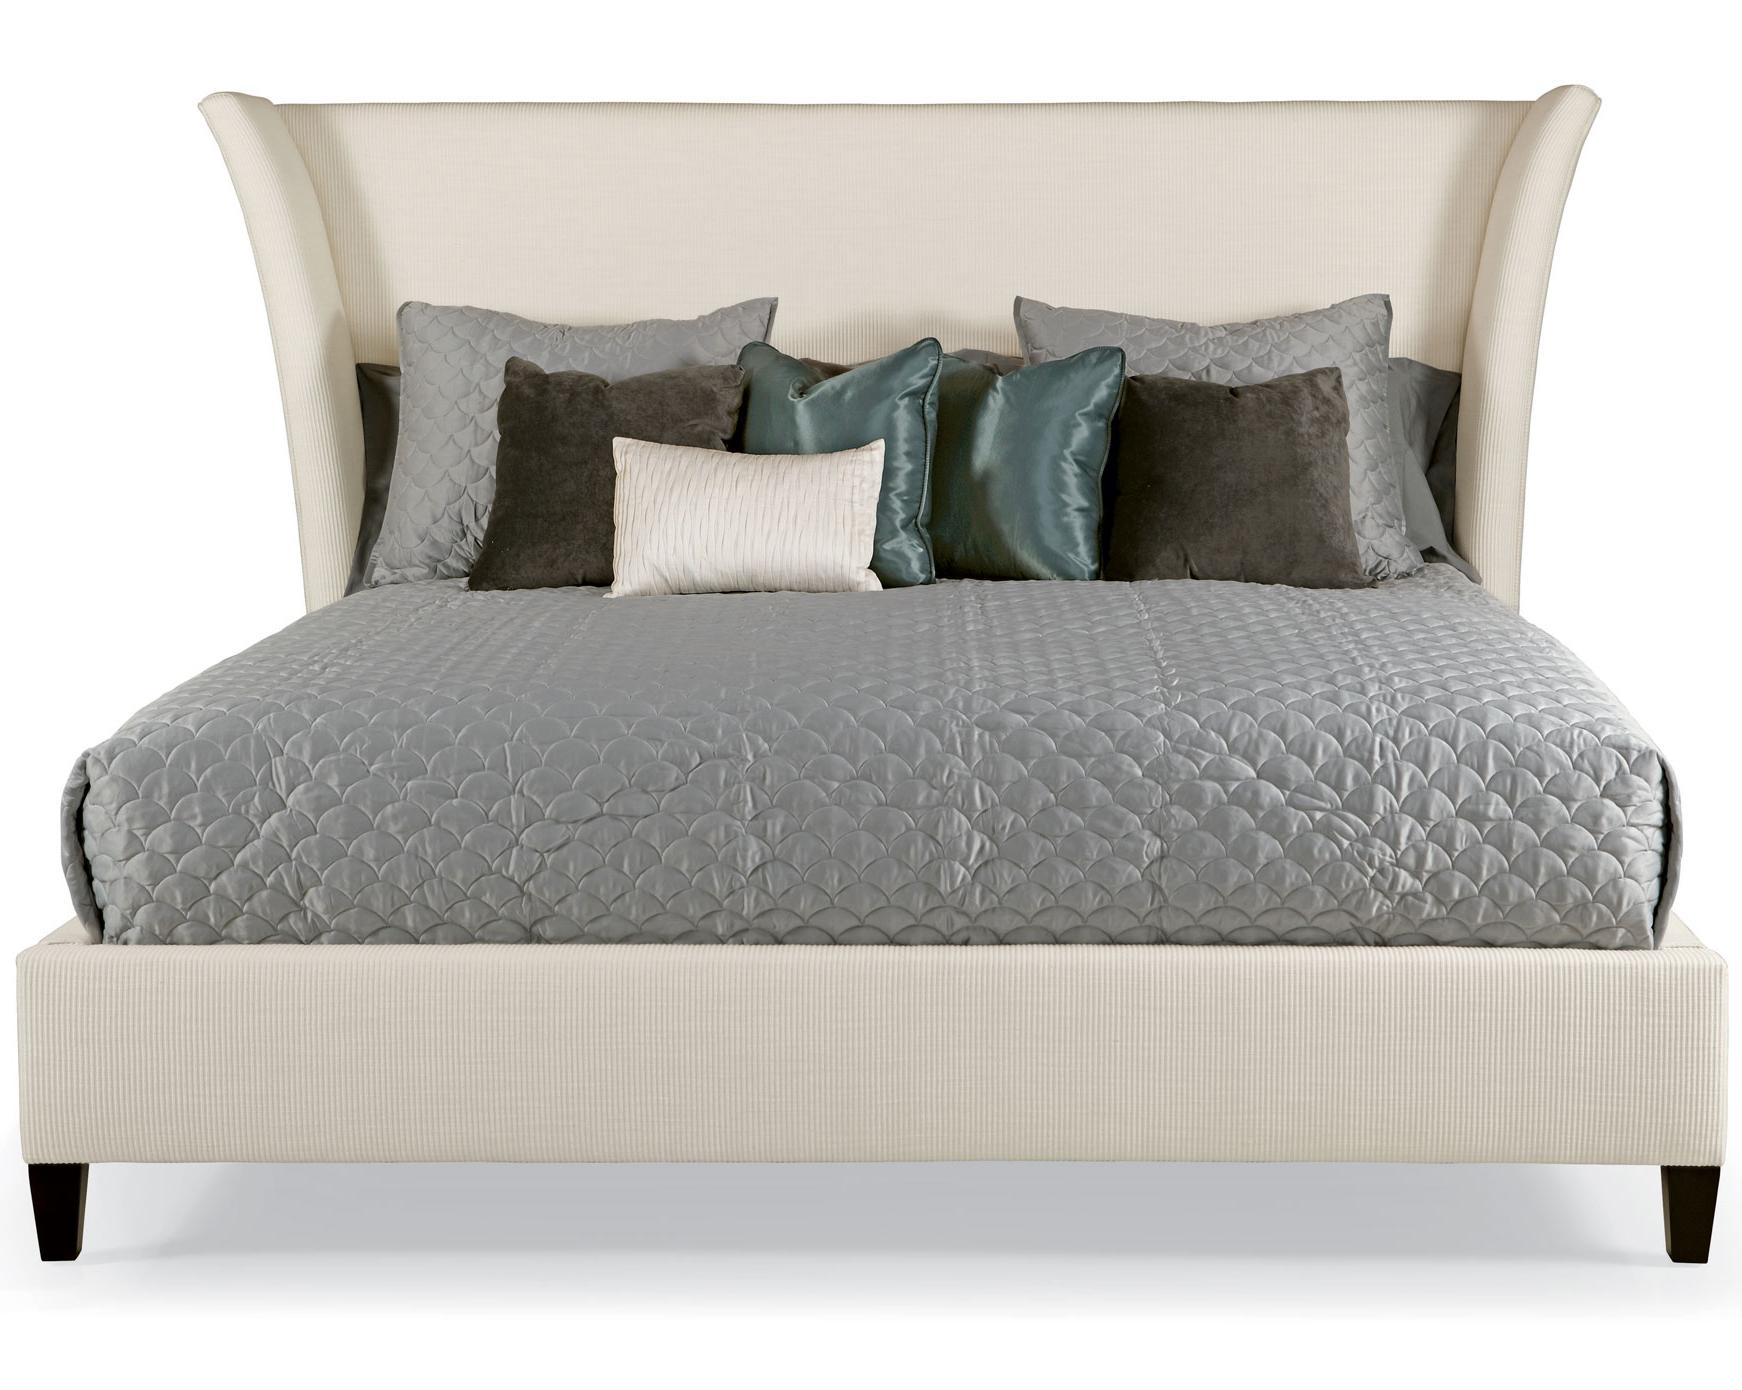 King Sienna Flare Upholstered Bed